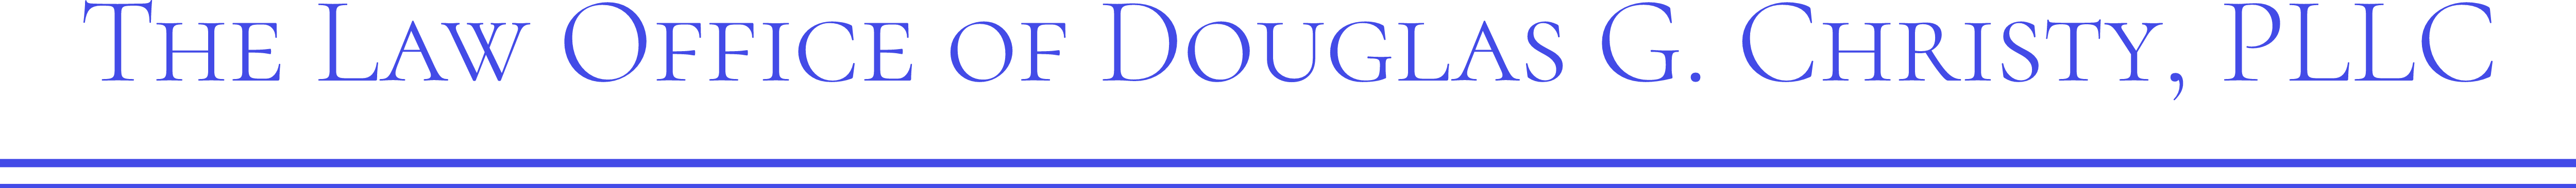 The Law Office of Douglas G. Christy, PLLC Logo